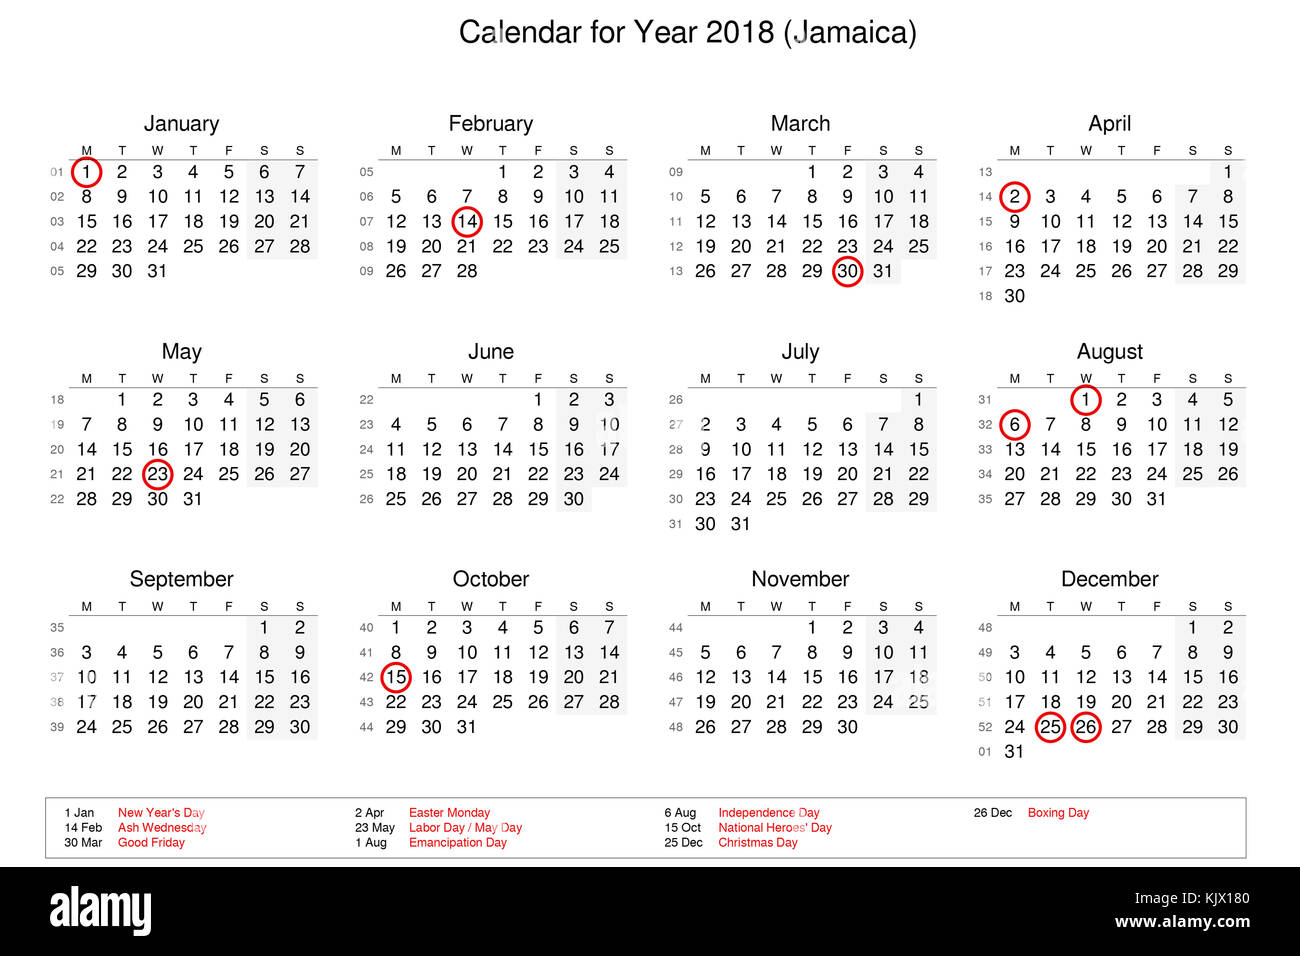 calendar of year 2018 with public holidays and bank holidays for jamaica